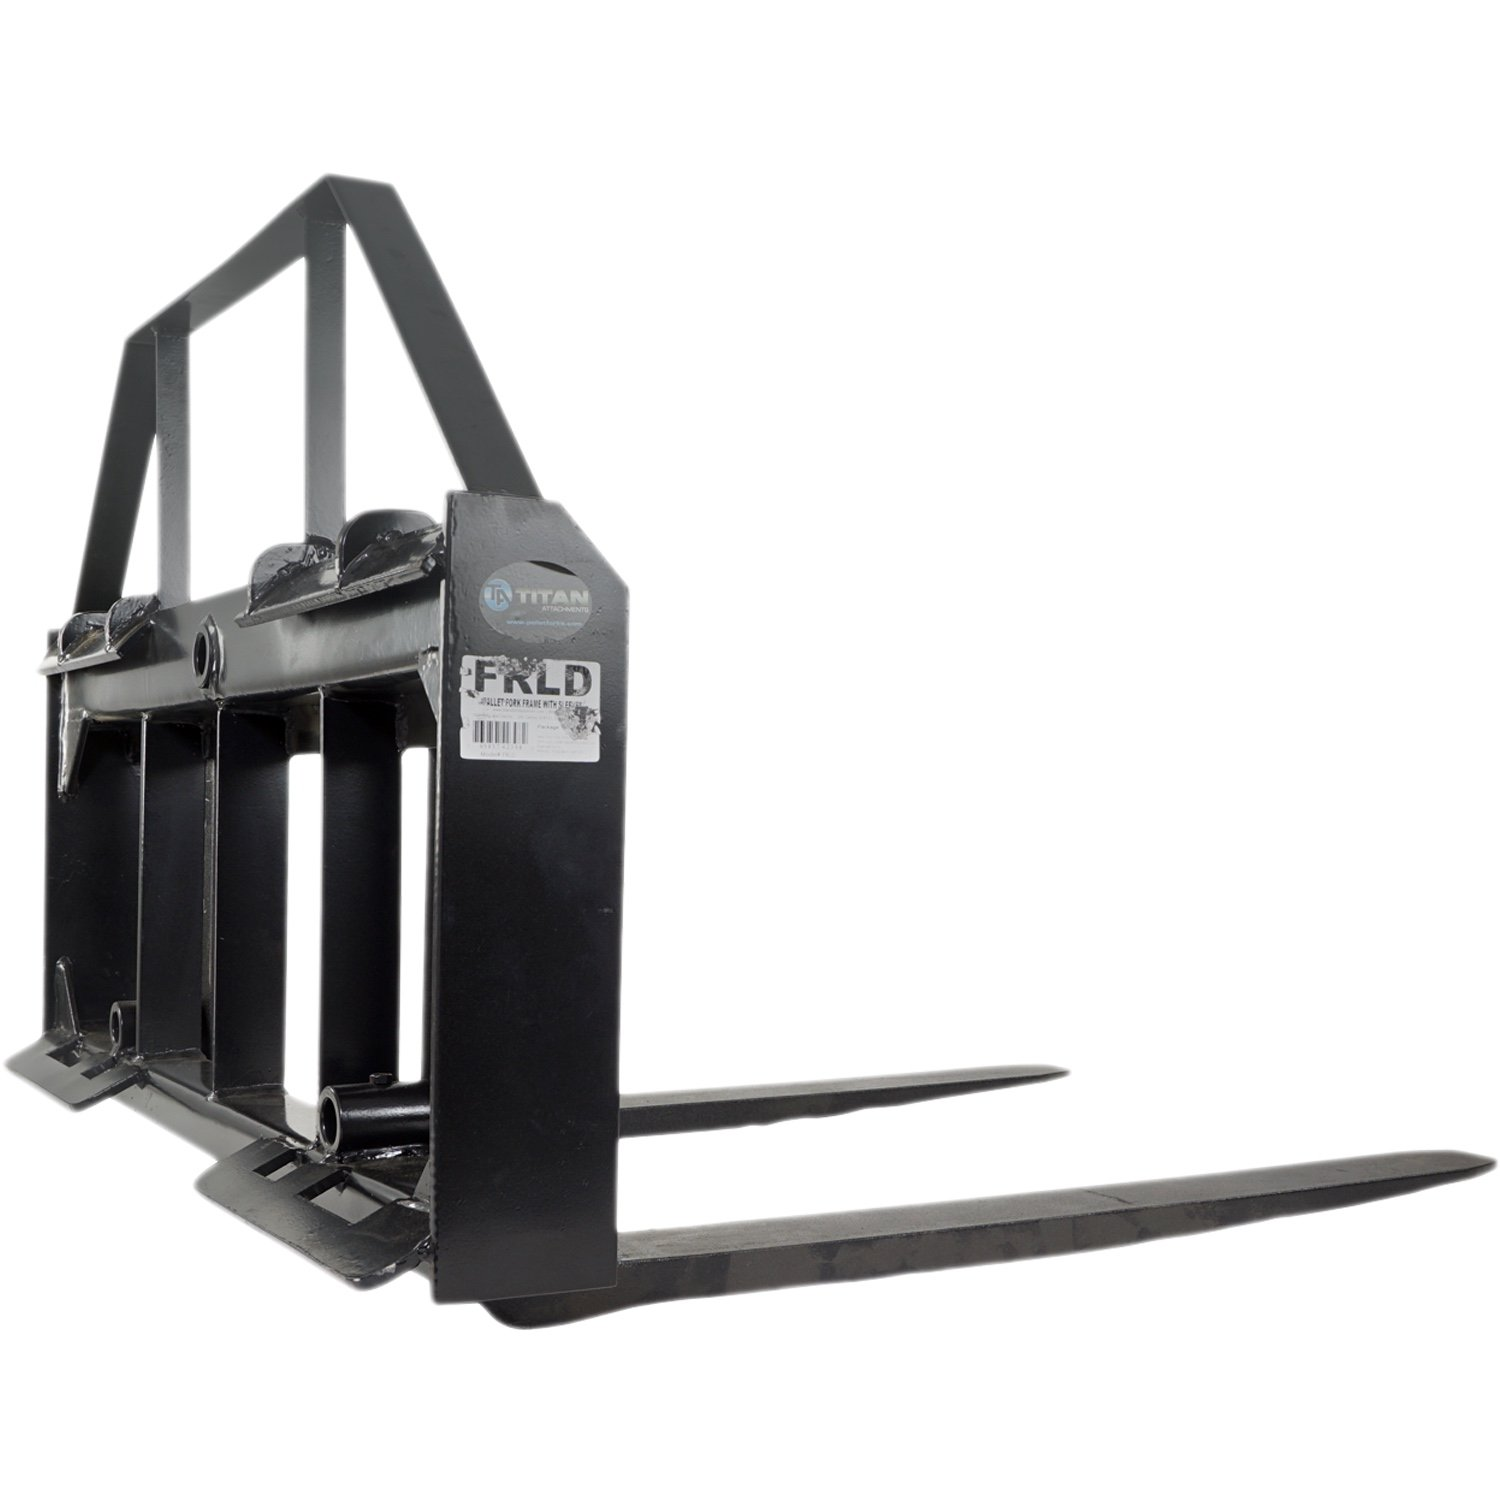 Titan 42'' Pallet Fork Attachment Tractor Kubota Holland Skid Steer Quick tach by Titan Attachments (Image #6)